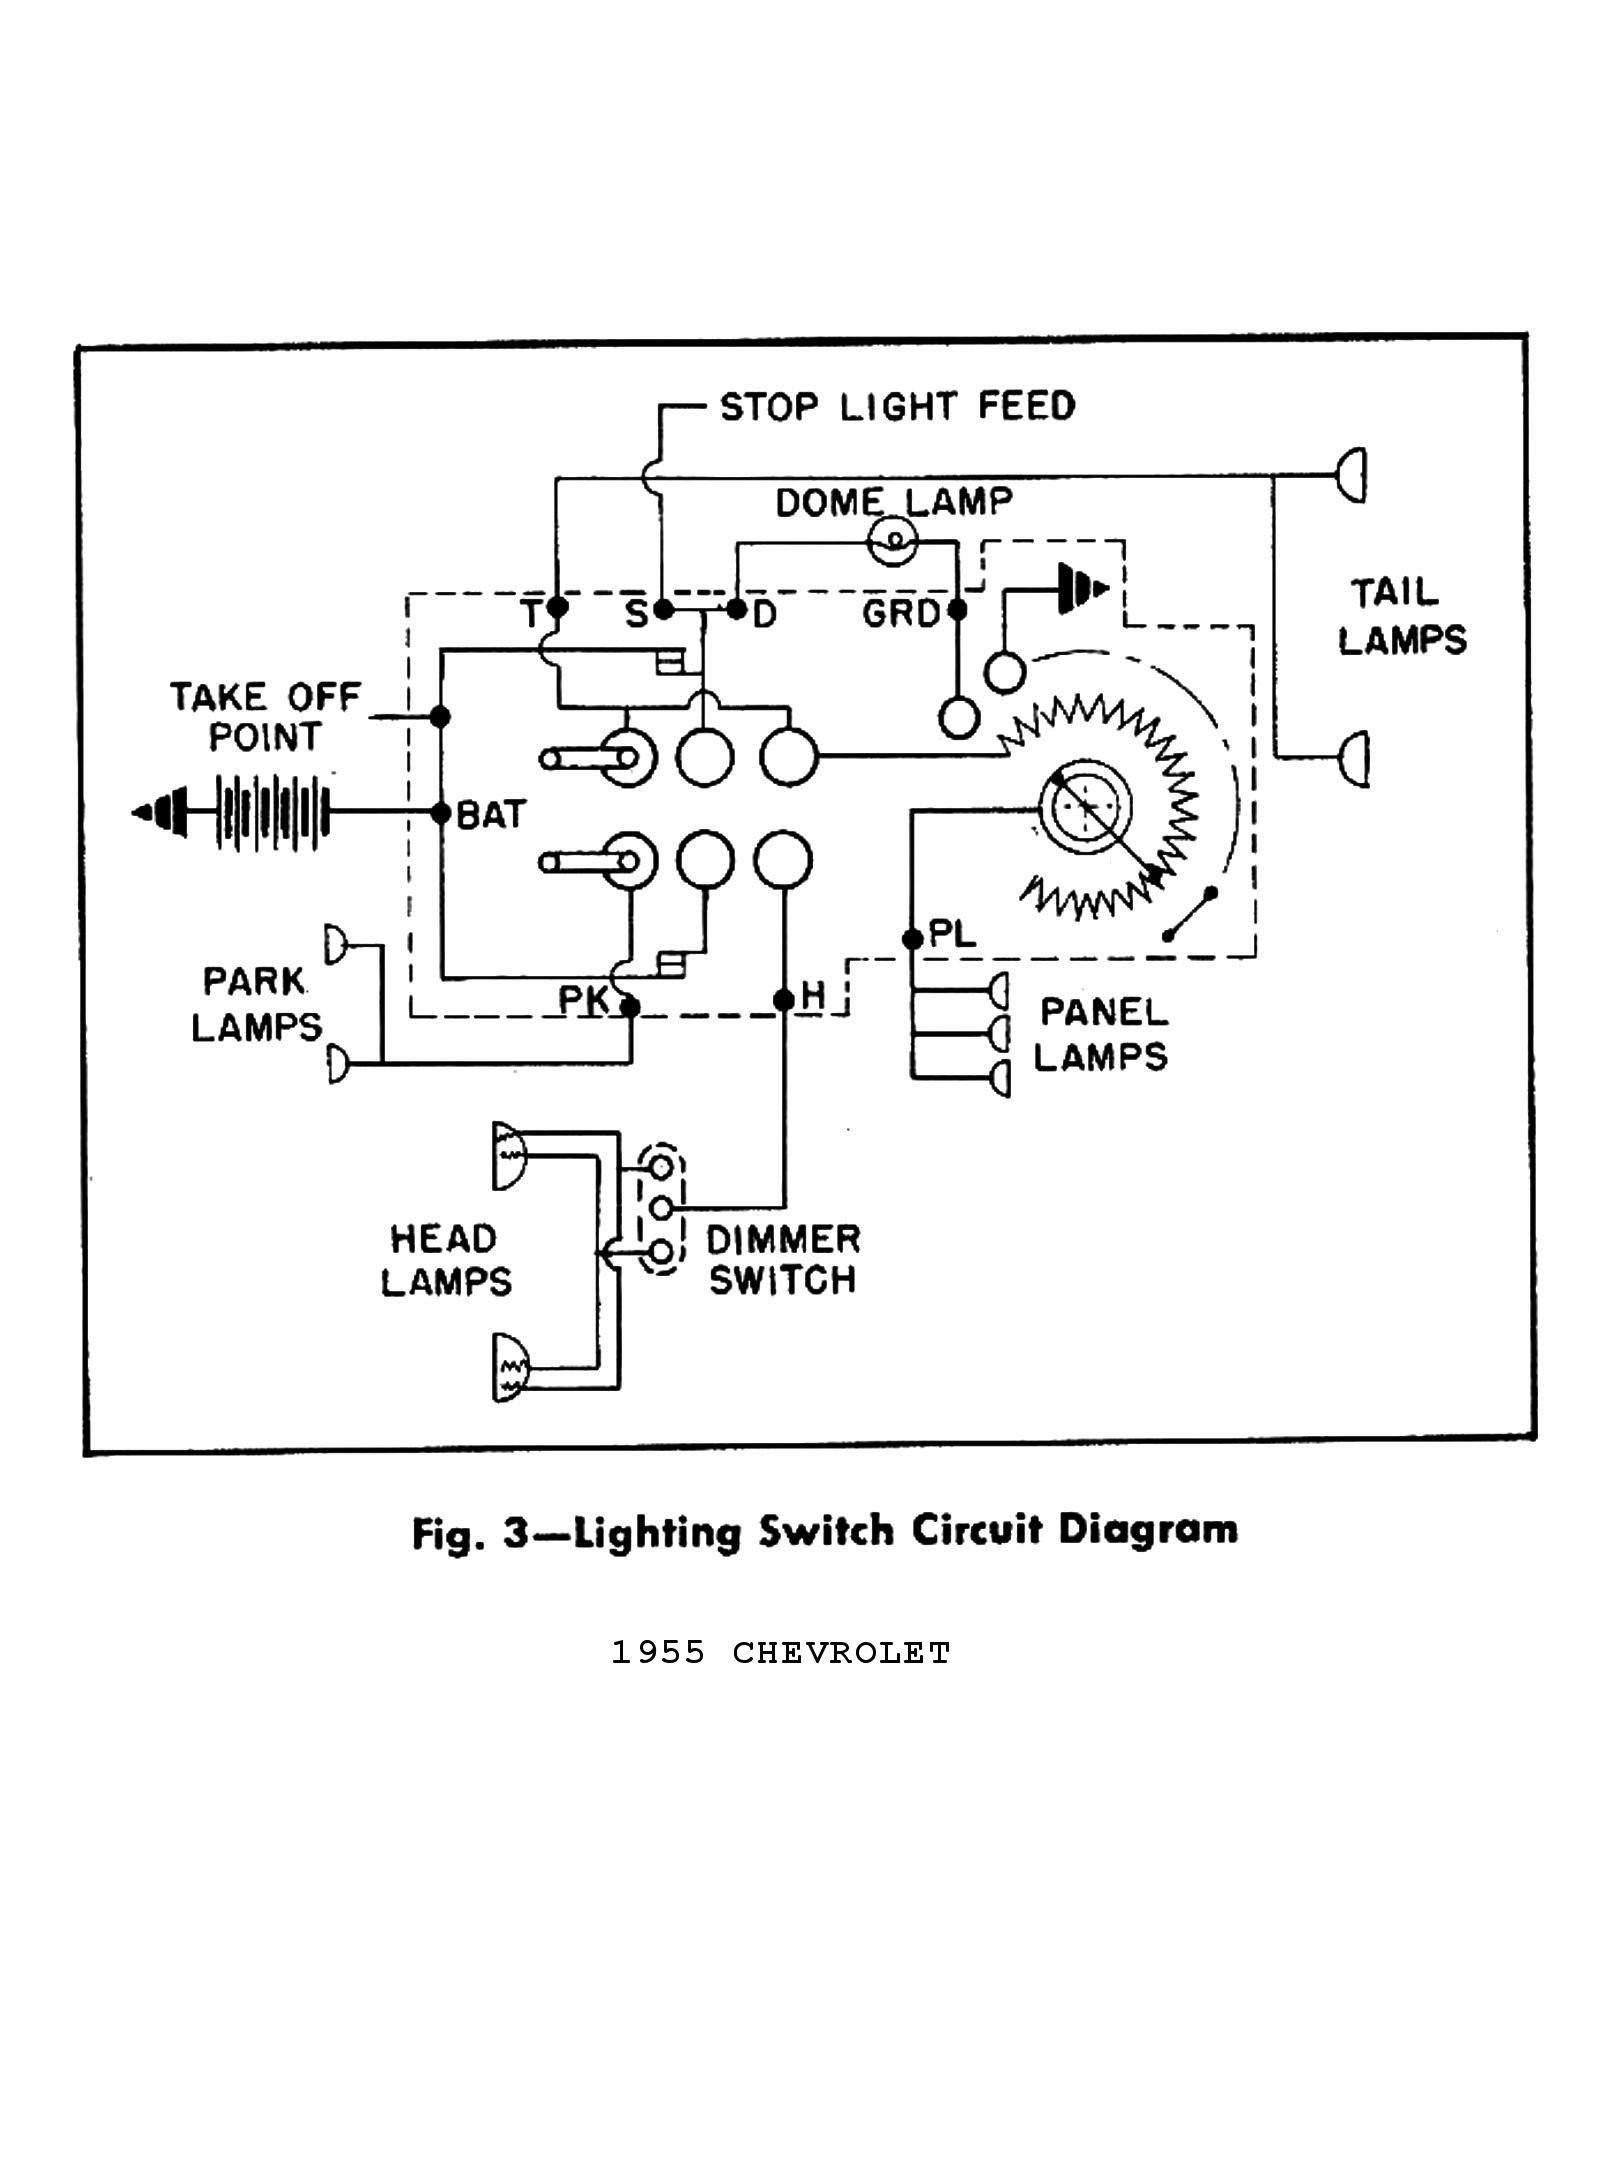 Wiring Diagram for Power Window Switches 1995 Chevy Silverado Wiring ...